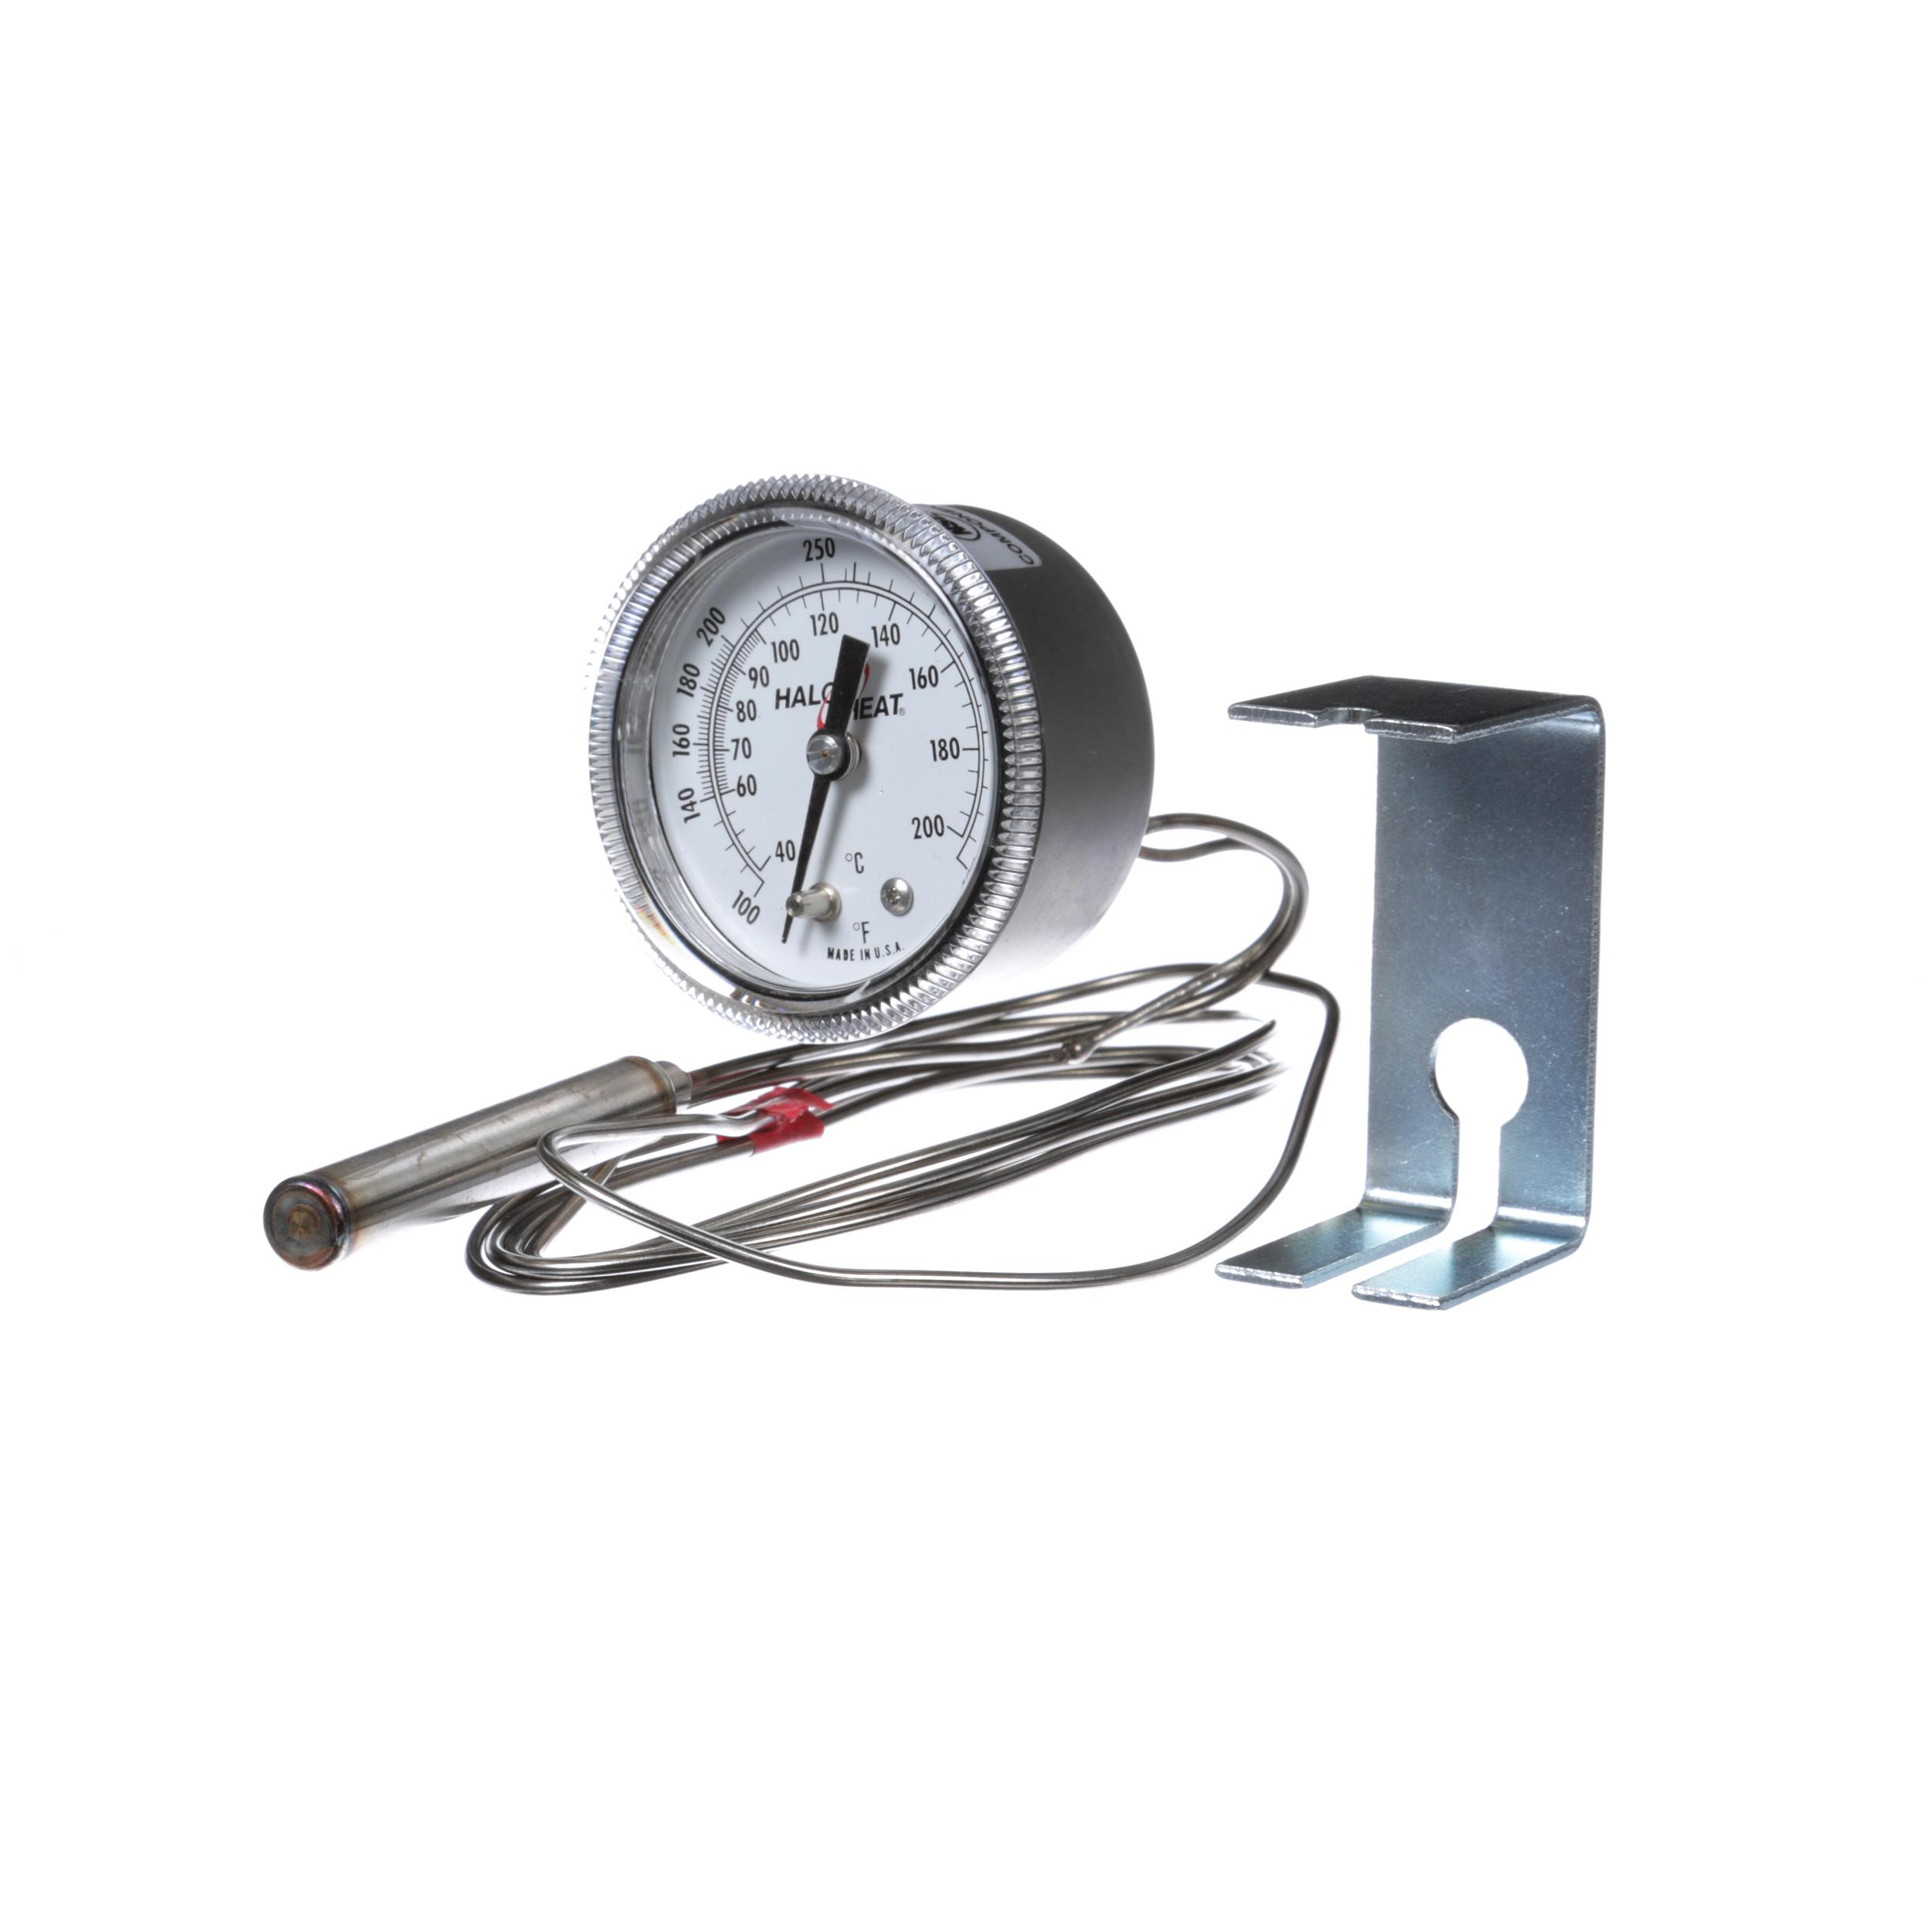 ALTO-SHAAM GAUGE,GAS,TEMP,100-400 DEG,F/